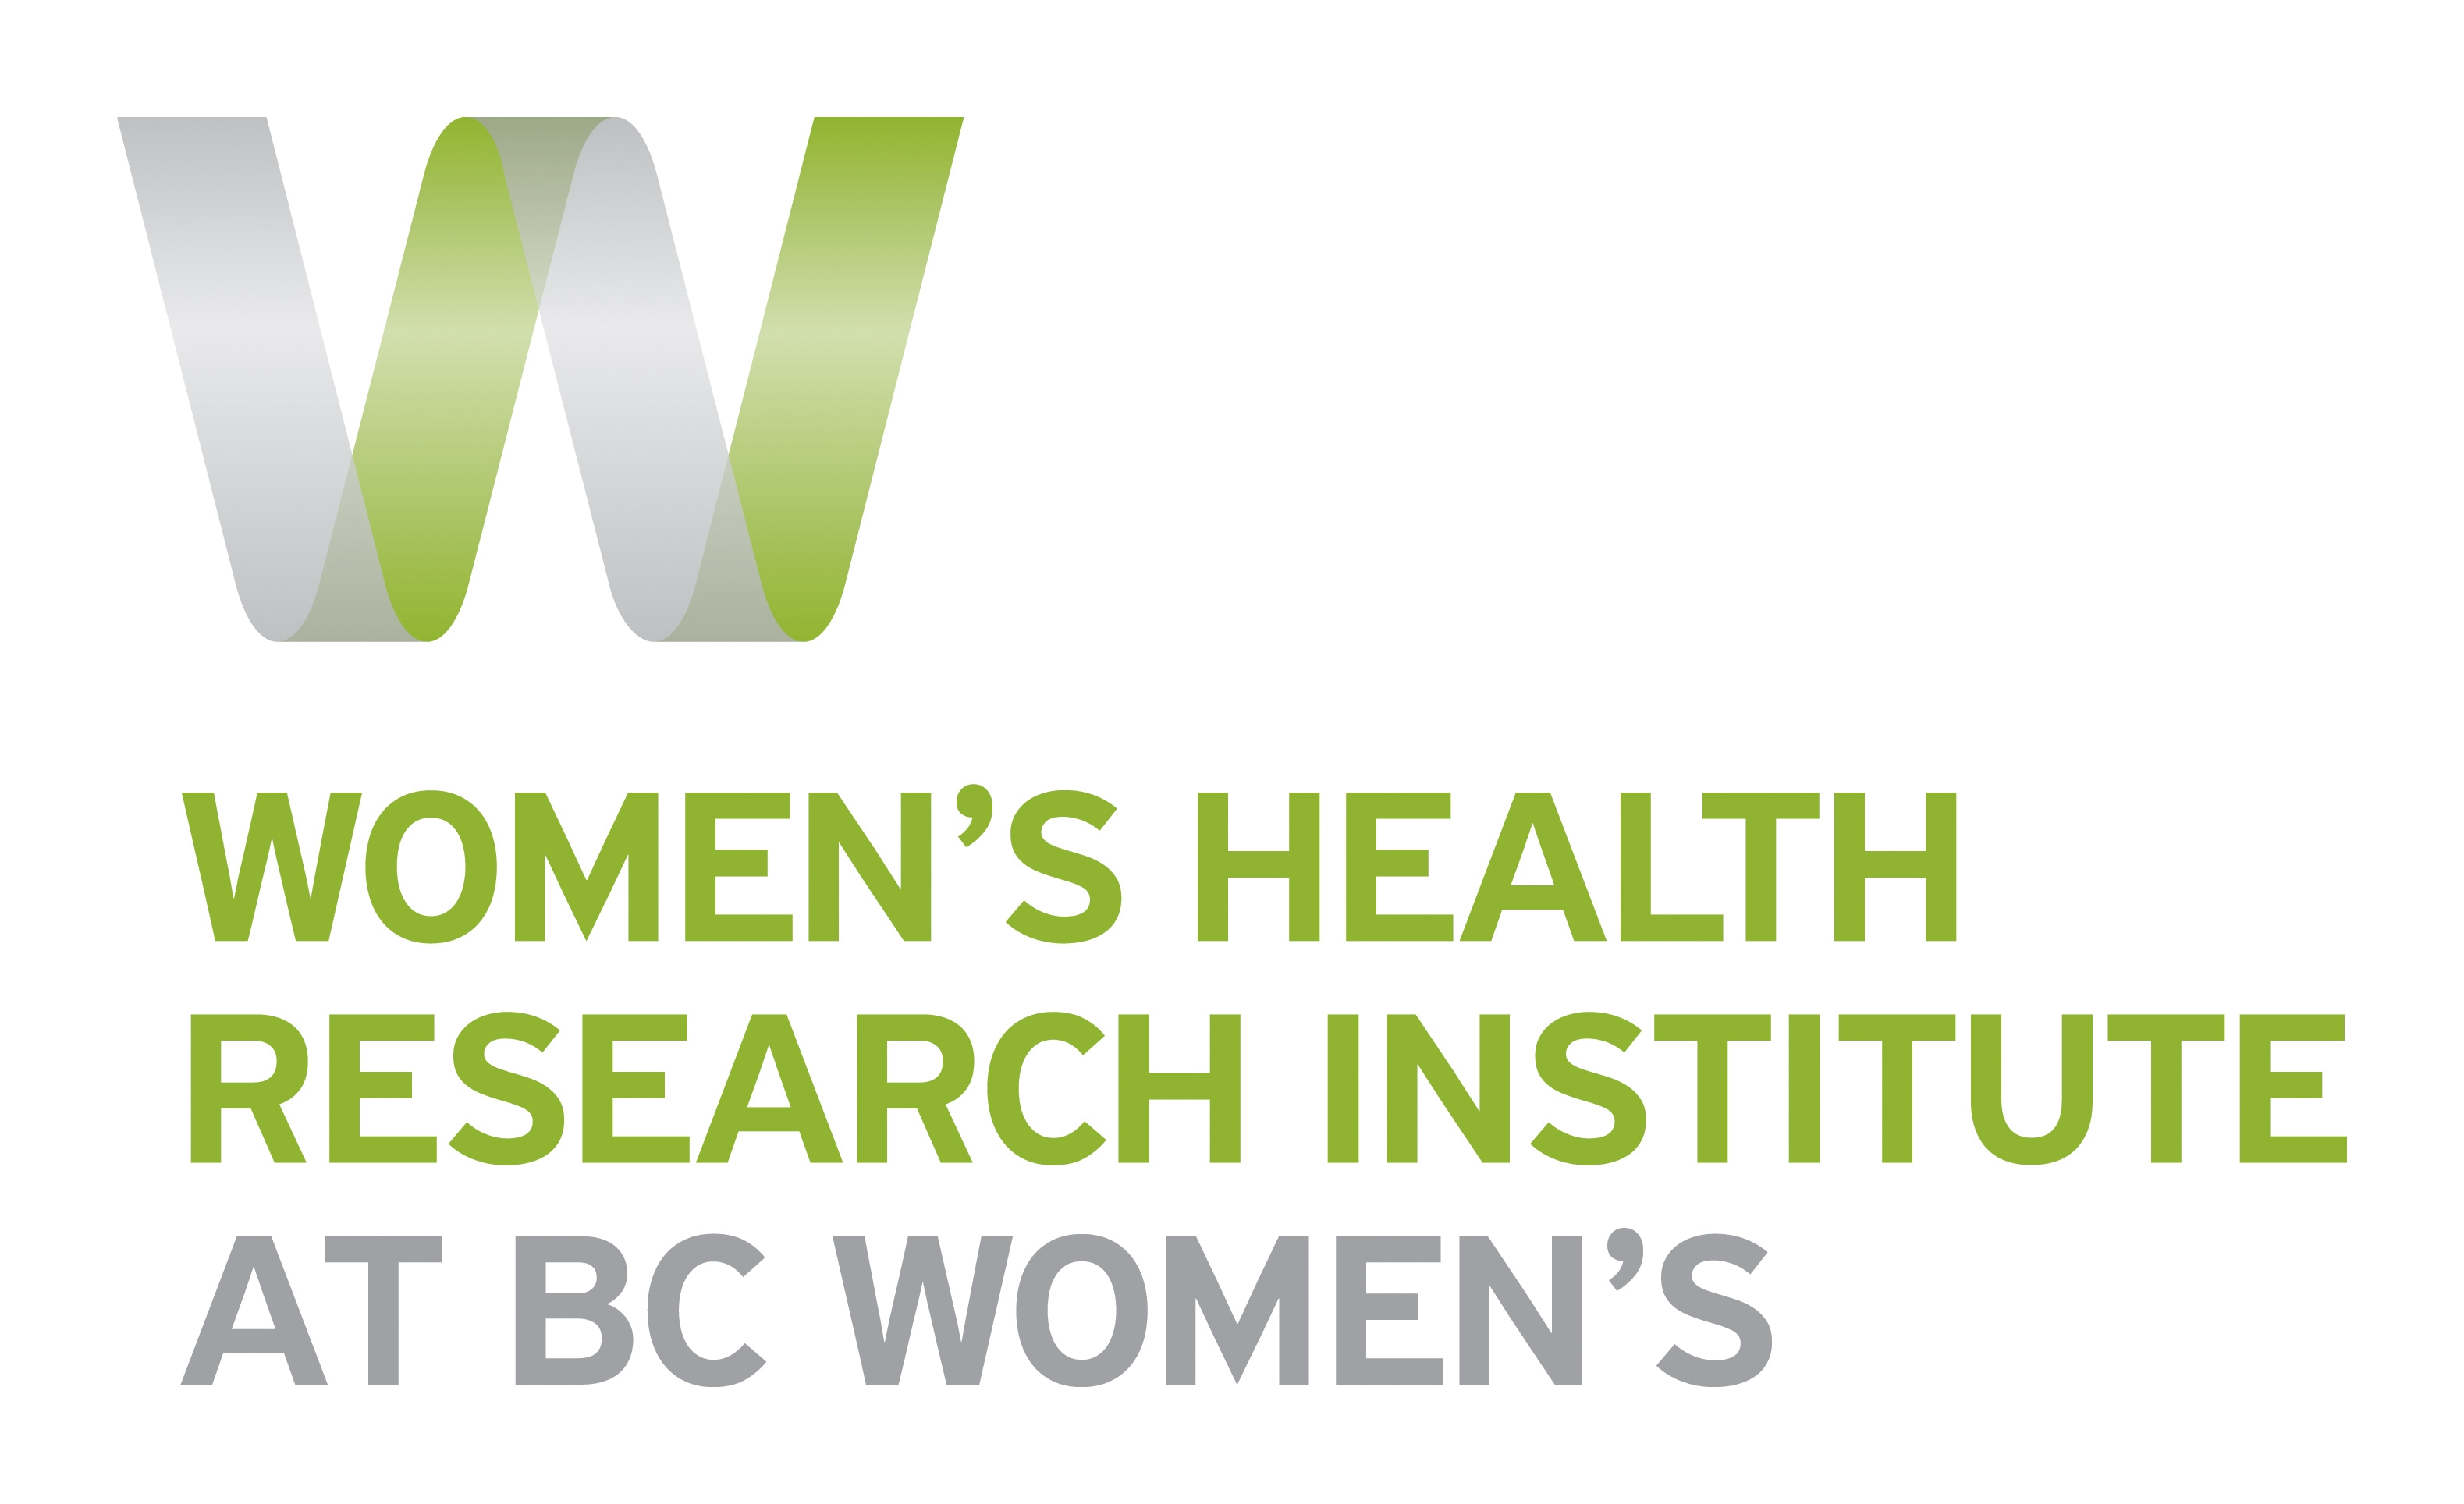 Women's Health Research Institute at BC Women's